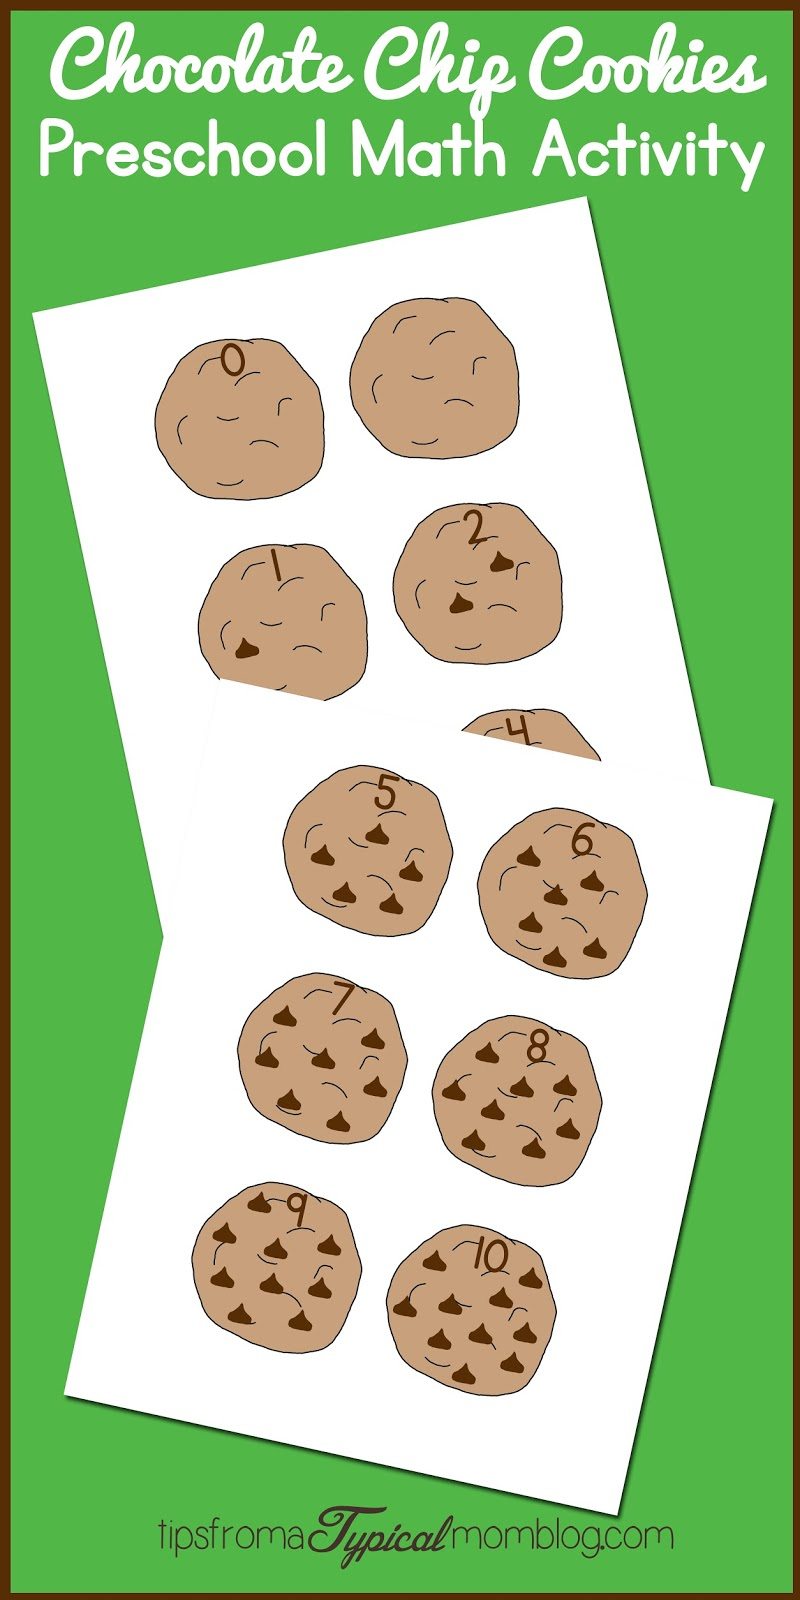 Perfect Chocolate Chip Cookie Recipe Amp Math Activity If